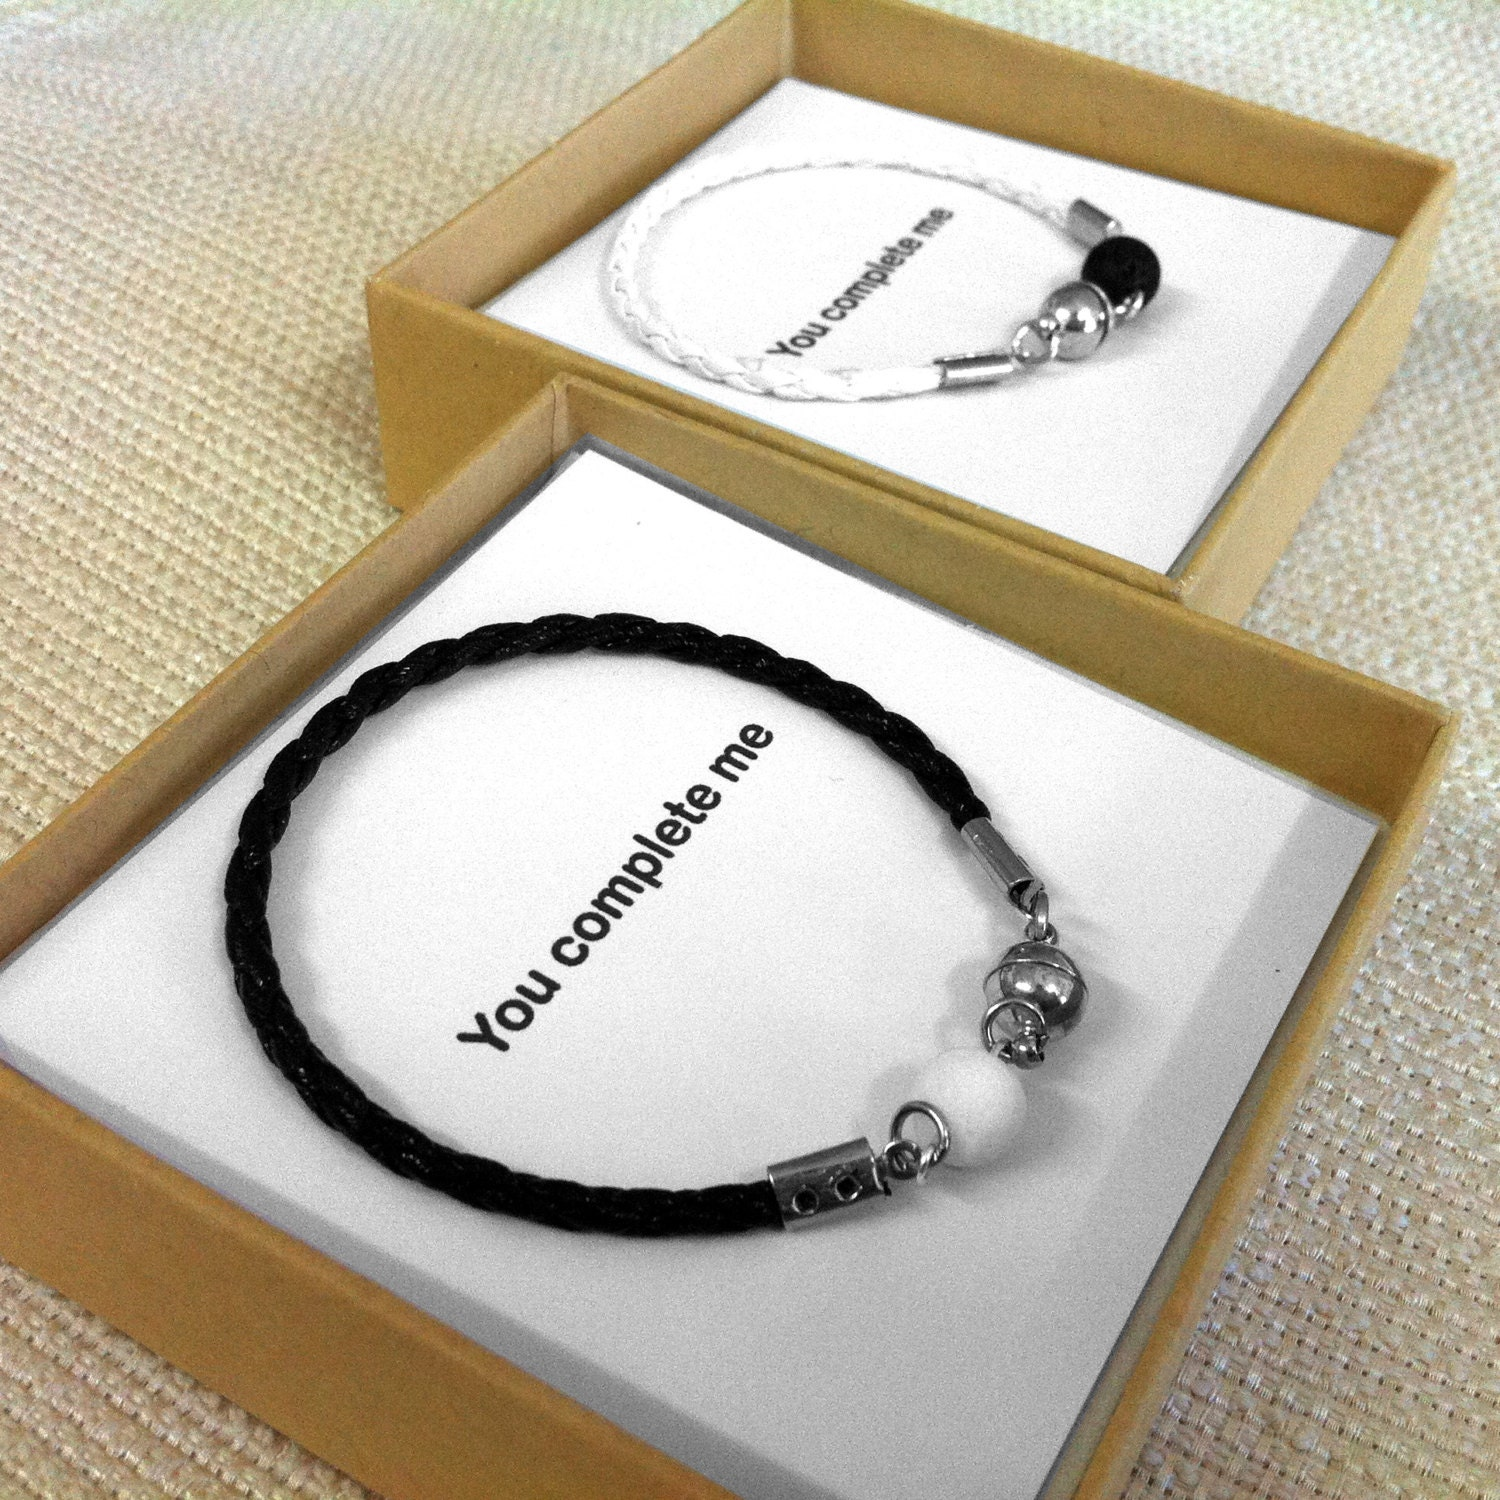 Gifts For Newly Wed Couple: Valentine's Gift Couples Jewelry His And Her Bracelet